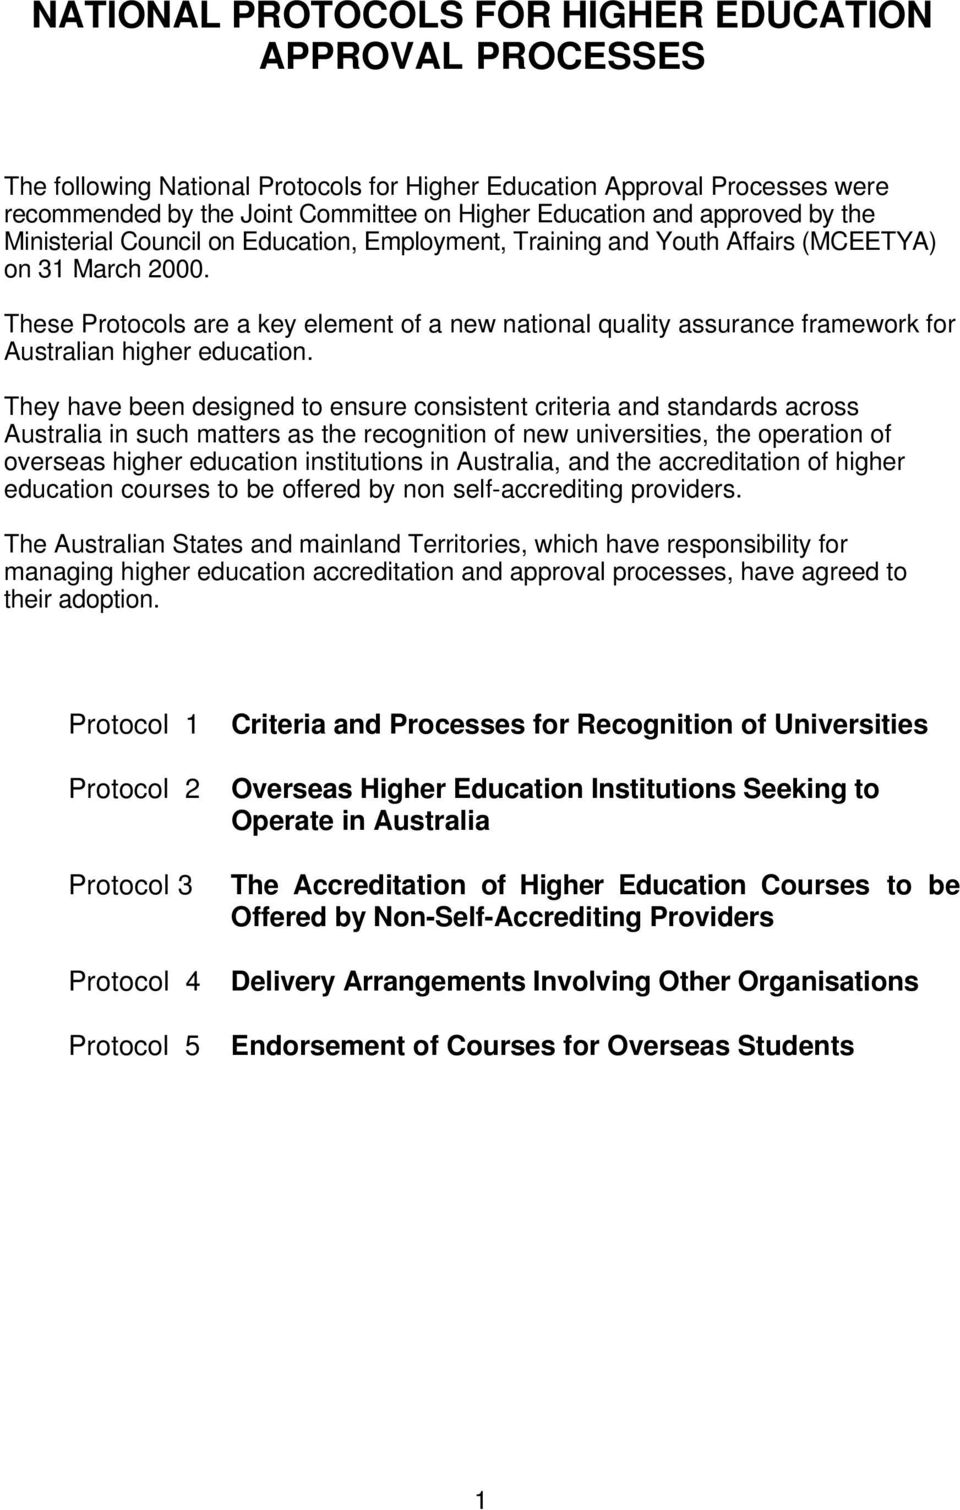 These Protocols are a key element of a new national quality assurance framework for Australian higher education.